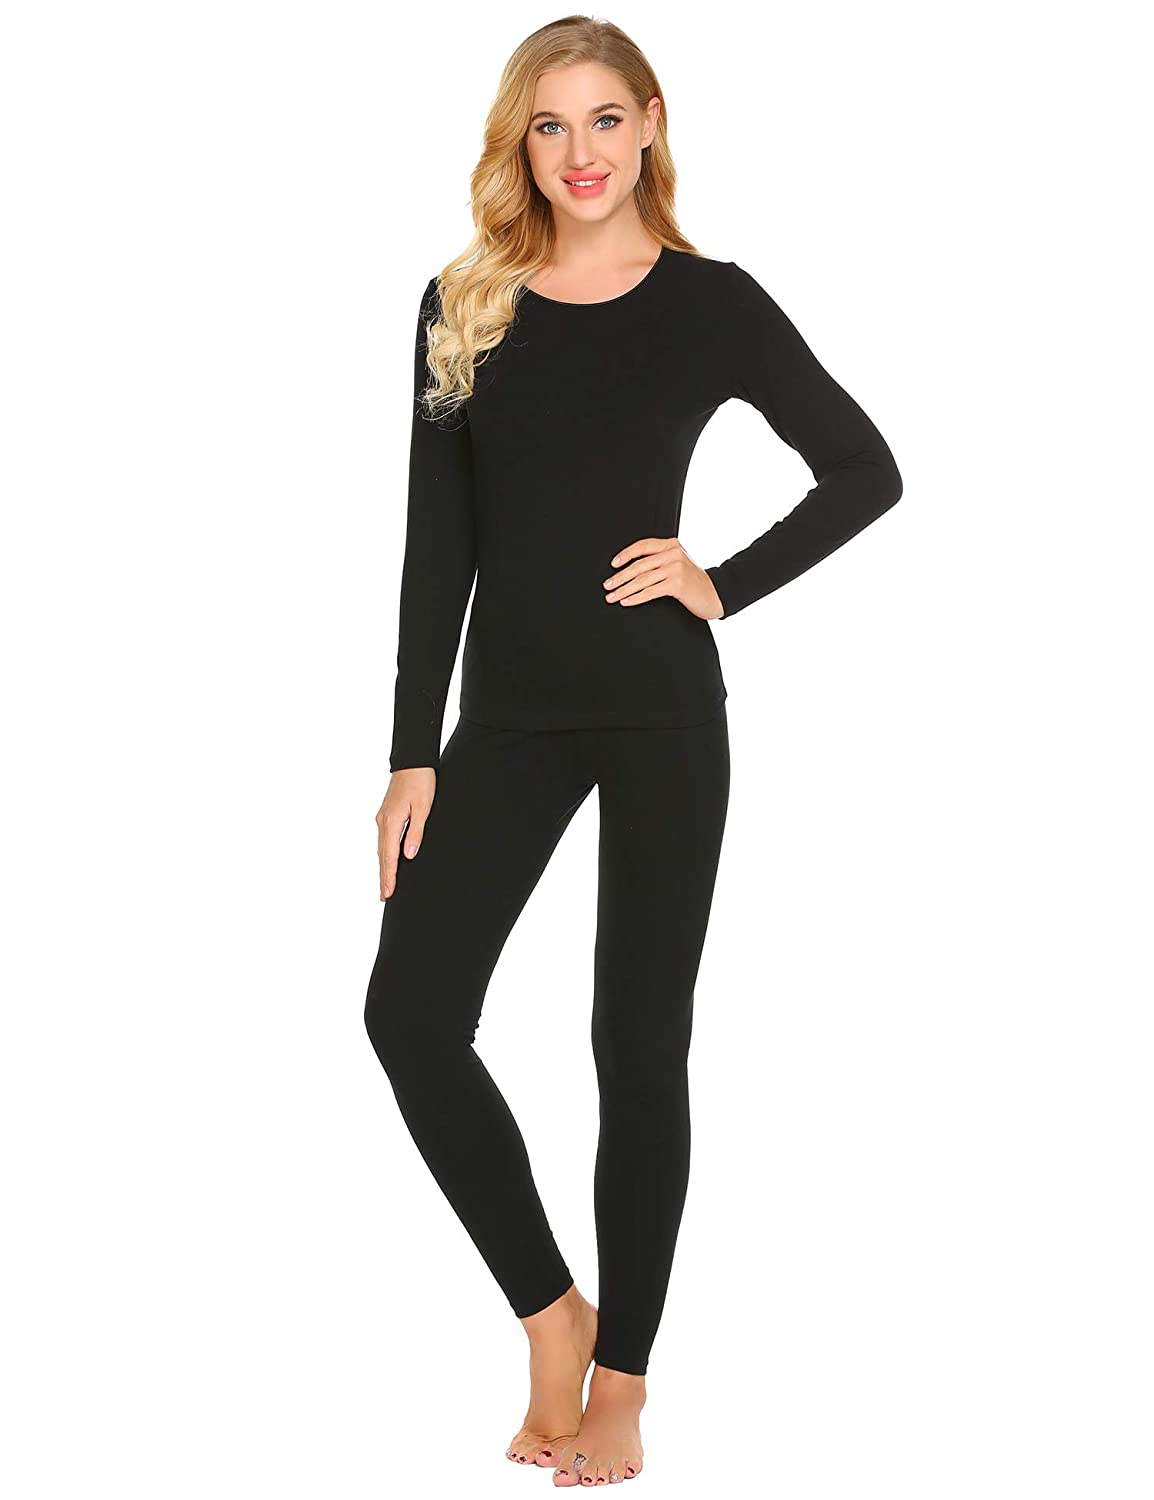 Ekouaer Women's Thermal Underwear Scoop Neck Cotton Long Johns Fleece Lined Winter Base Layering Set S-XXXL EKV007073